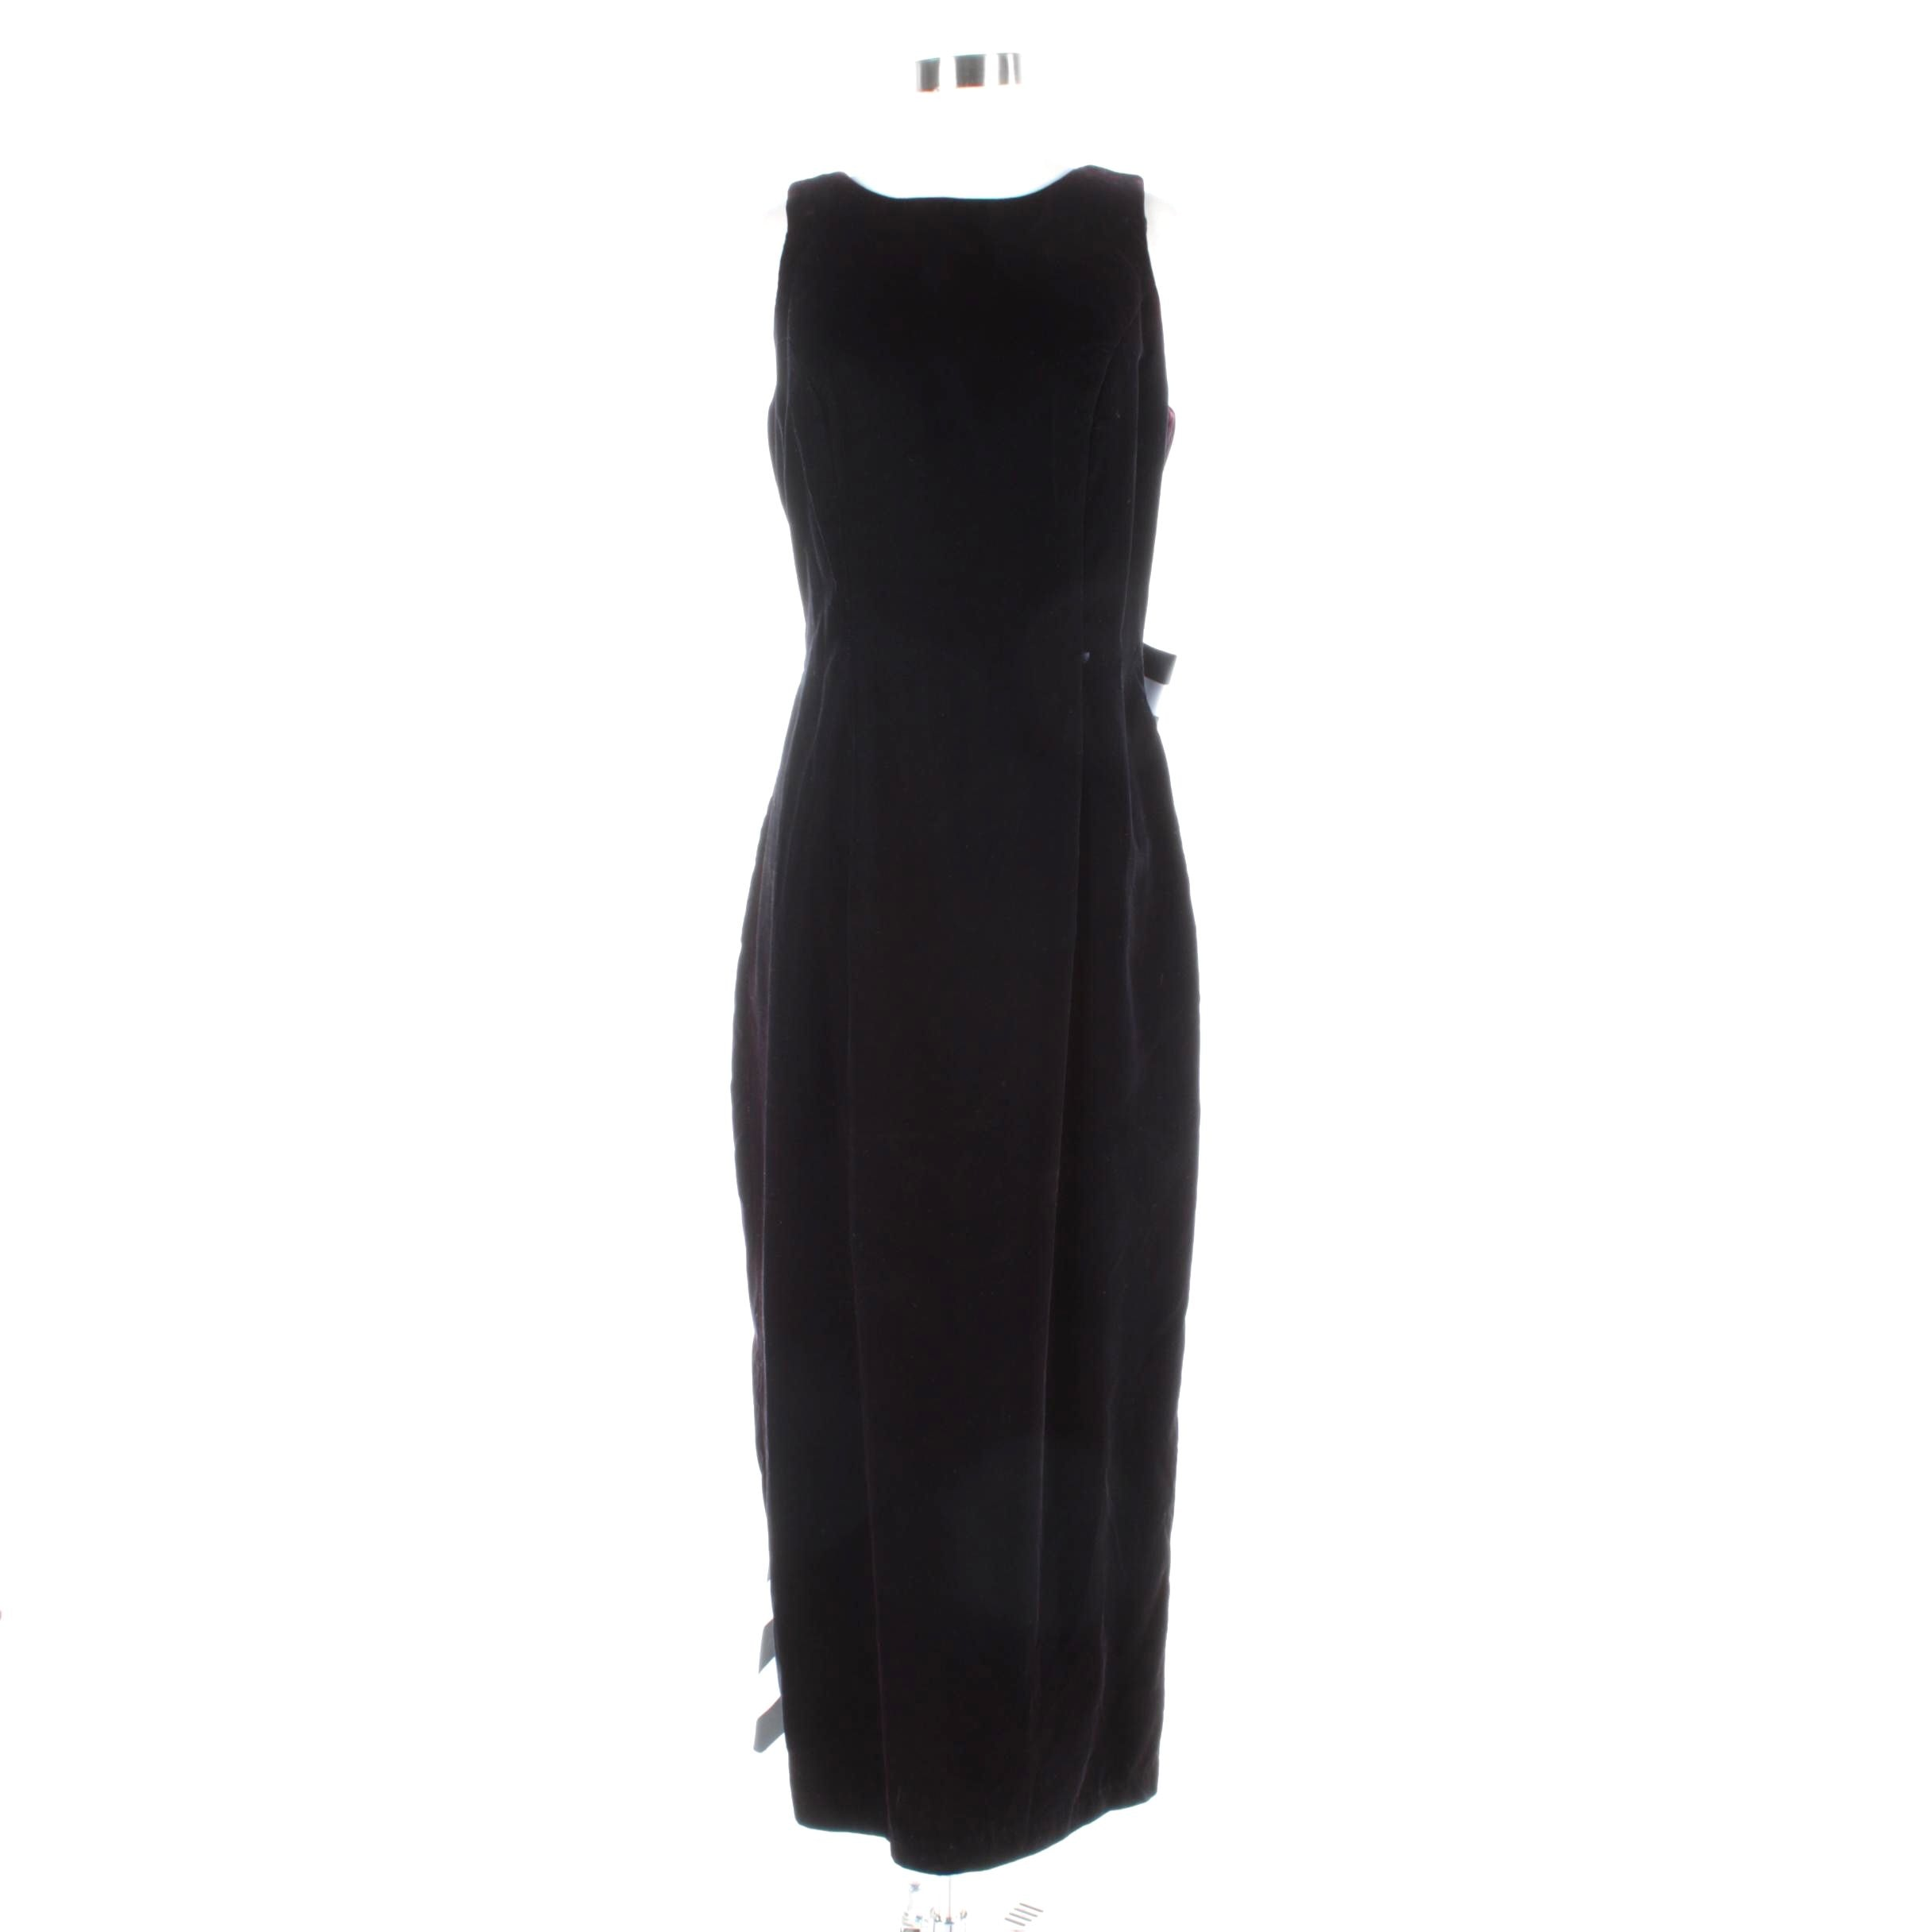 Dave & Johnny Black Velvet Sleeveless Gown with Striped Bow and Train